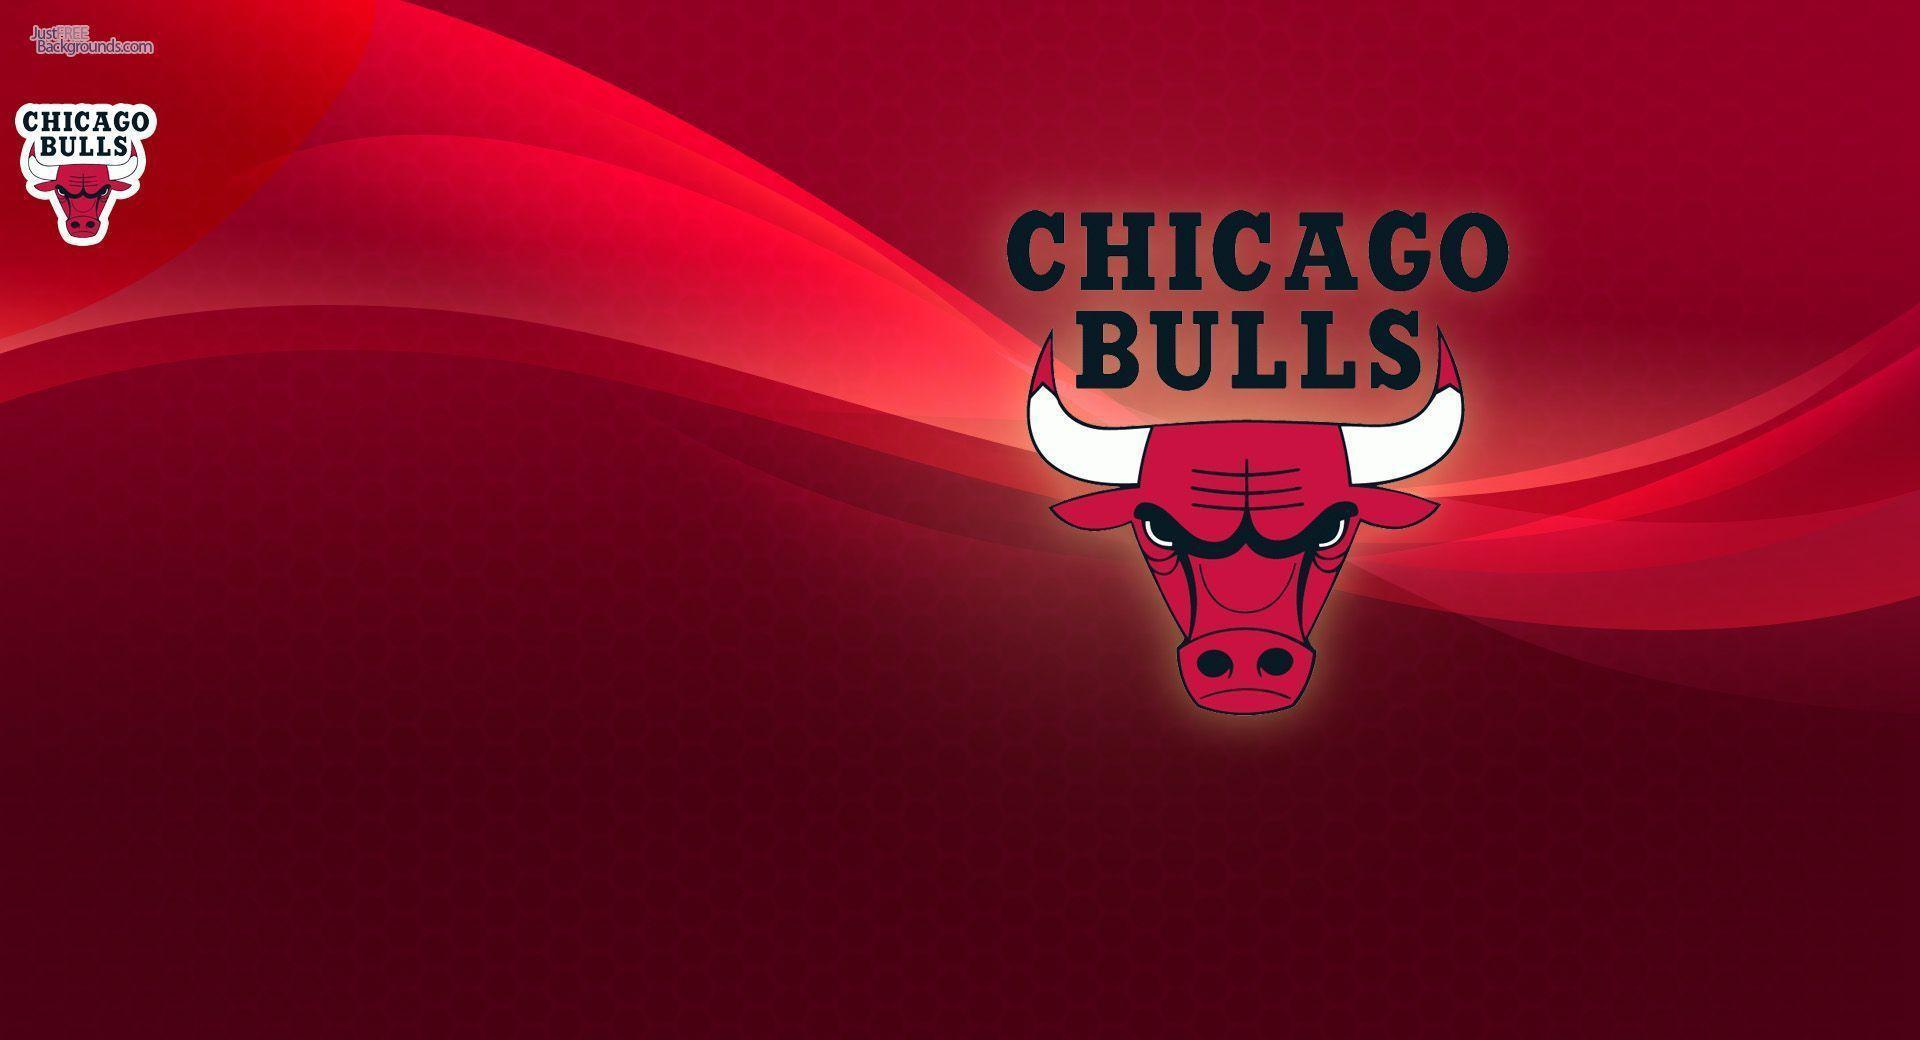 Chicago Bulls Wallpaper 30 24466 Images HD Wallpapers| Wallfoy.com